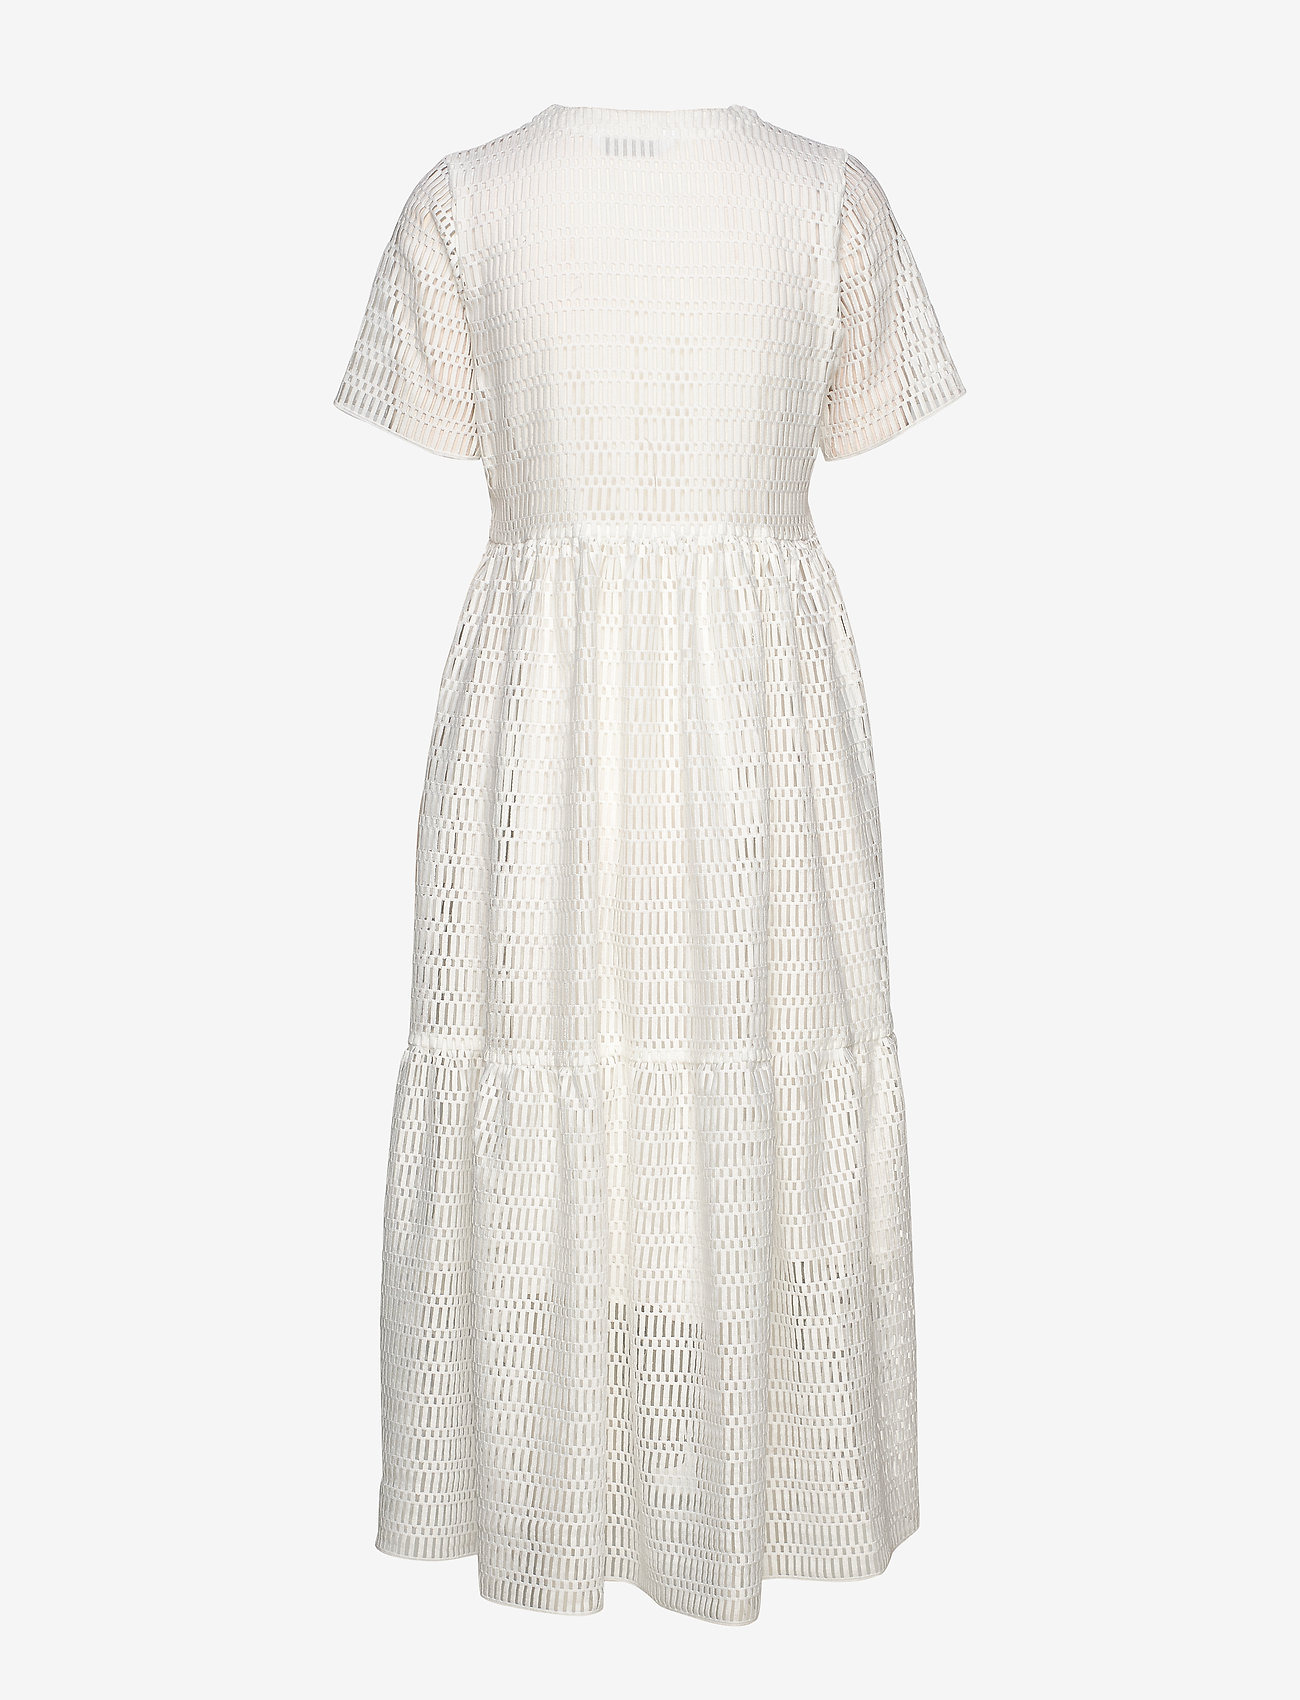 One Dress (White) (2566.85 kr) - Camilla Pihl